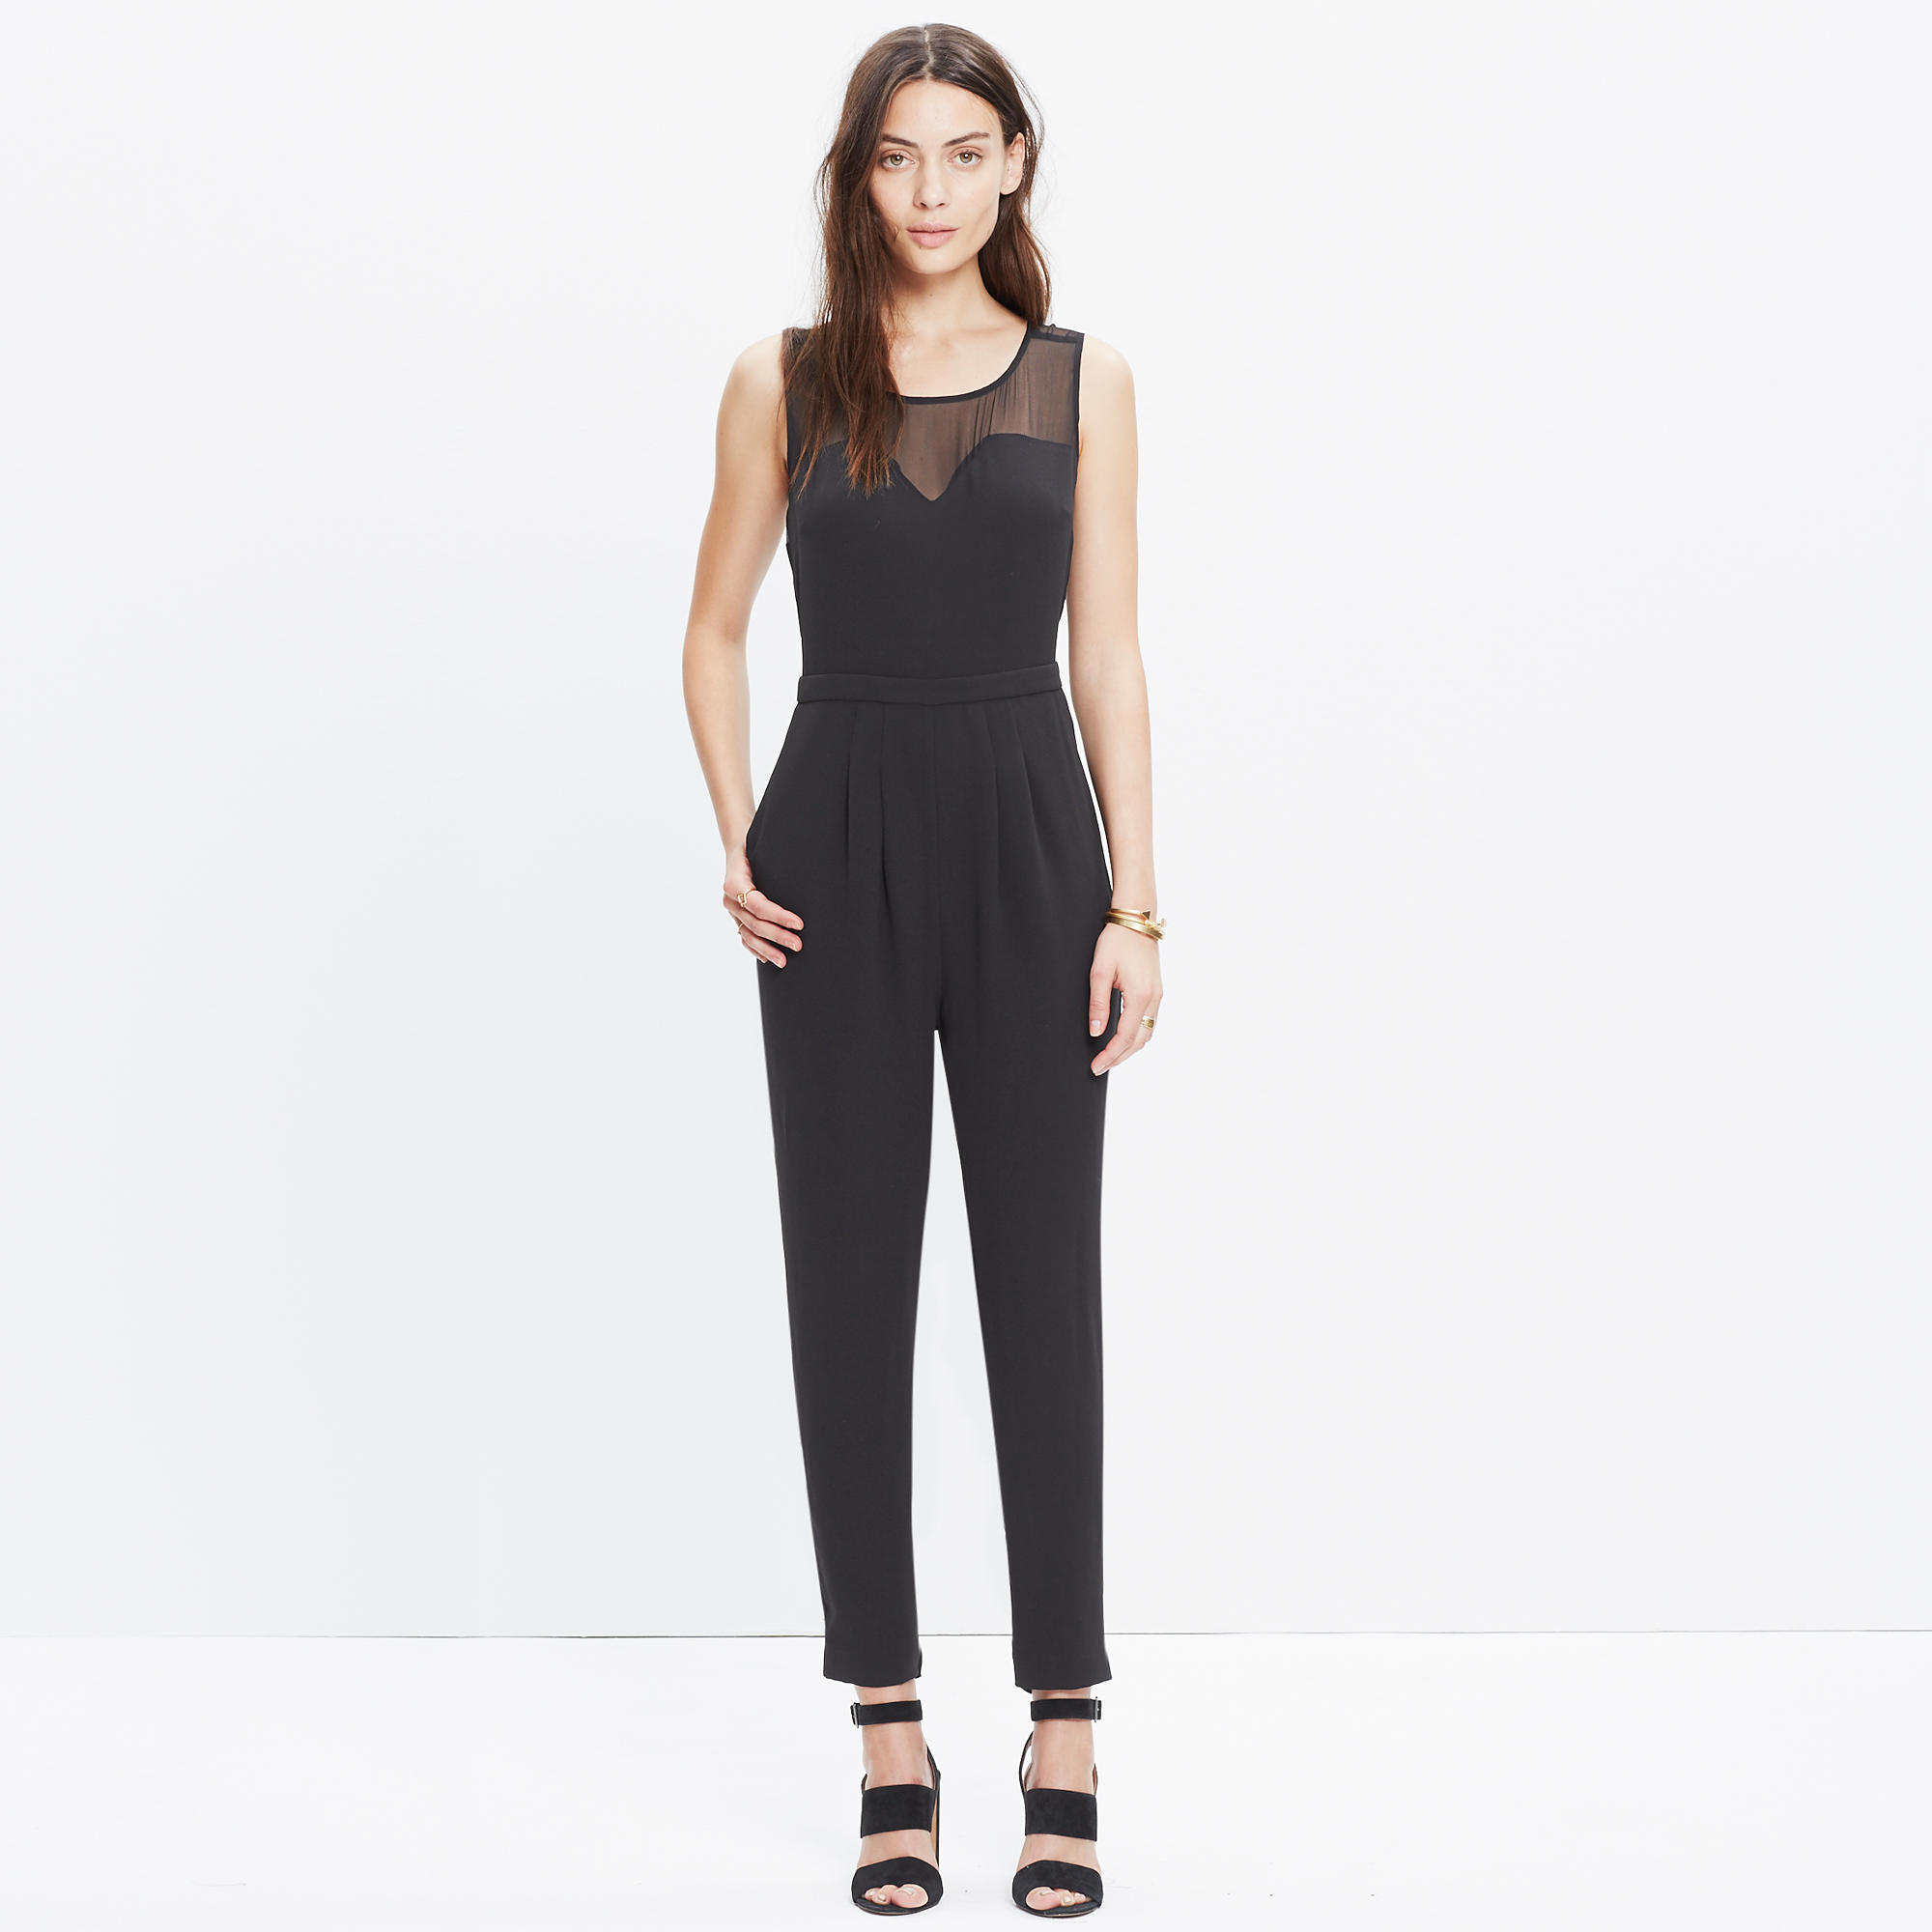 Get glam with our collection of evening jumpsuits, the perfect party dress alternative when you're going Out Out! Shop the party range of jumpsuits today.